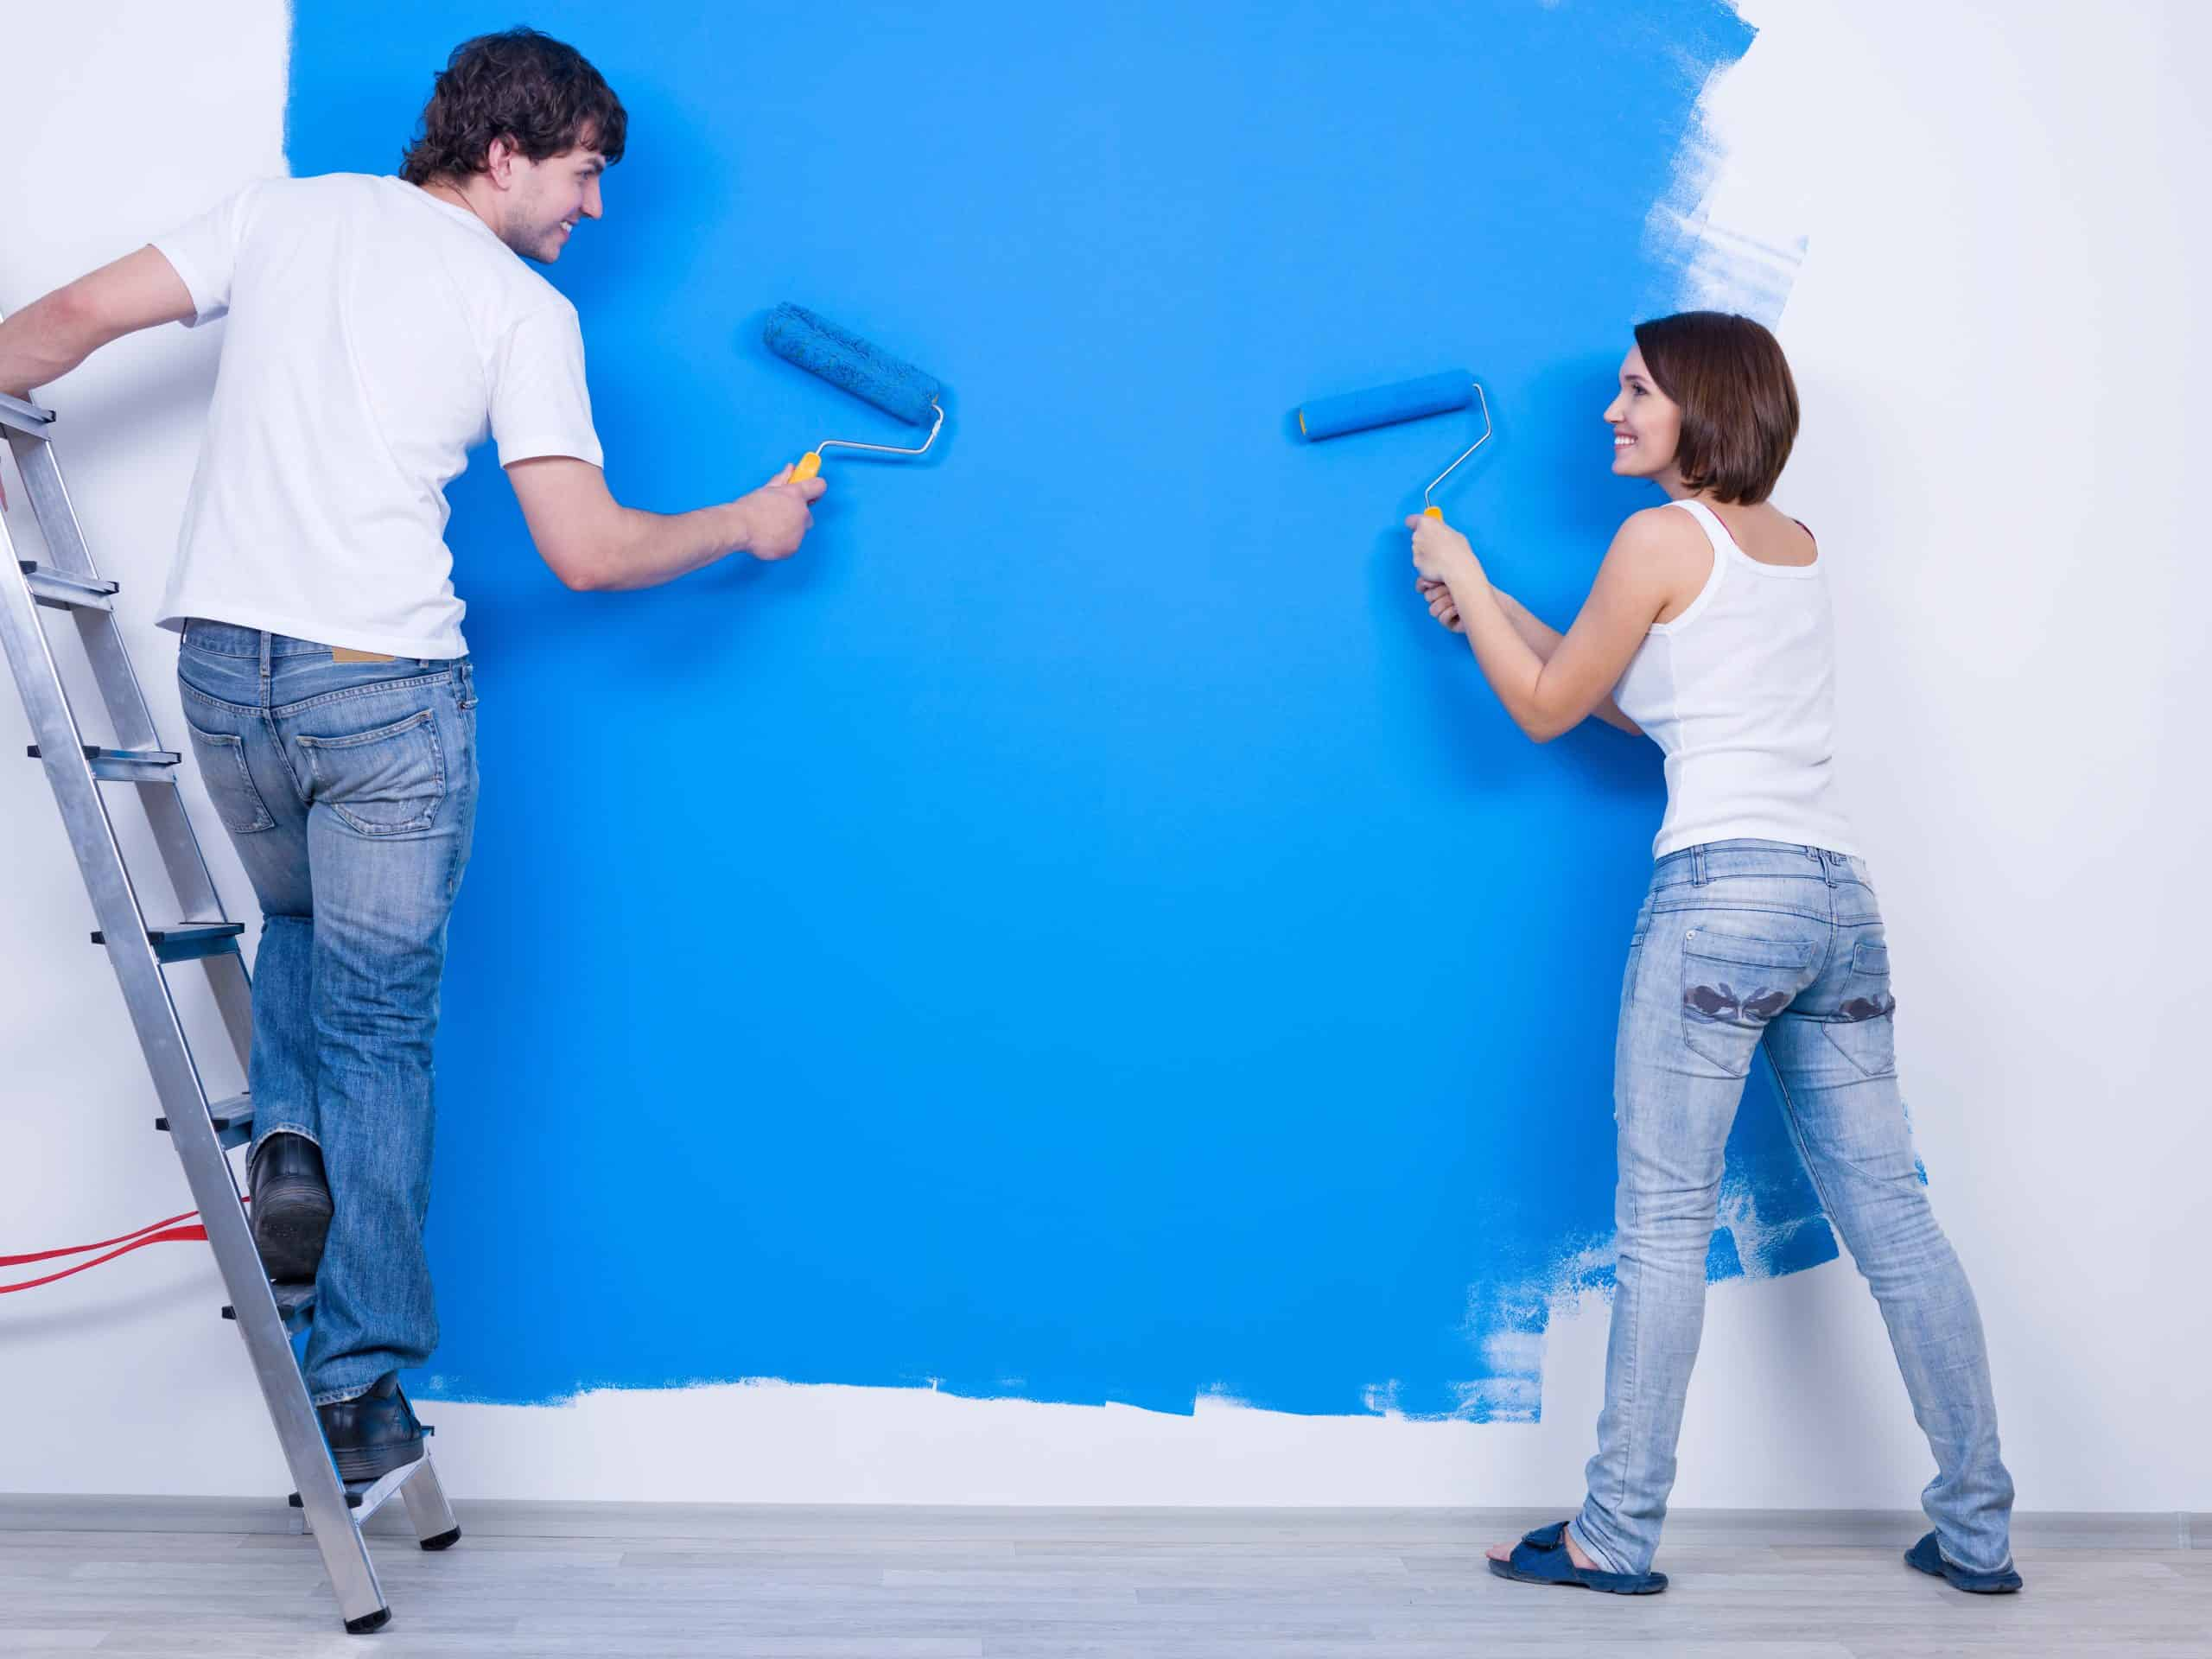 home renovation mistakes Young couple in casuals сoloring the wall in blue - rear view